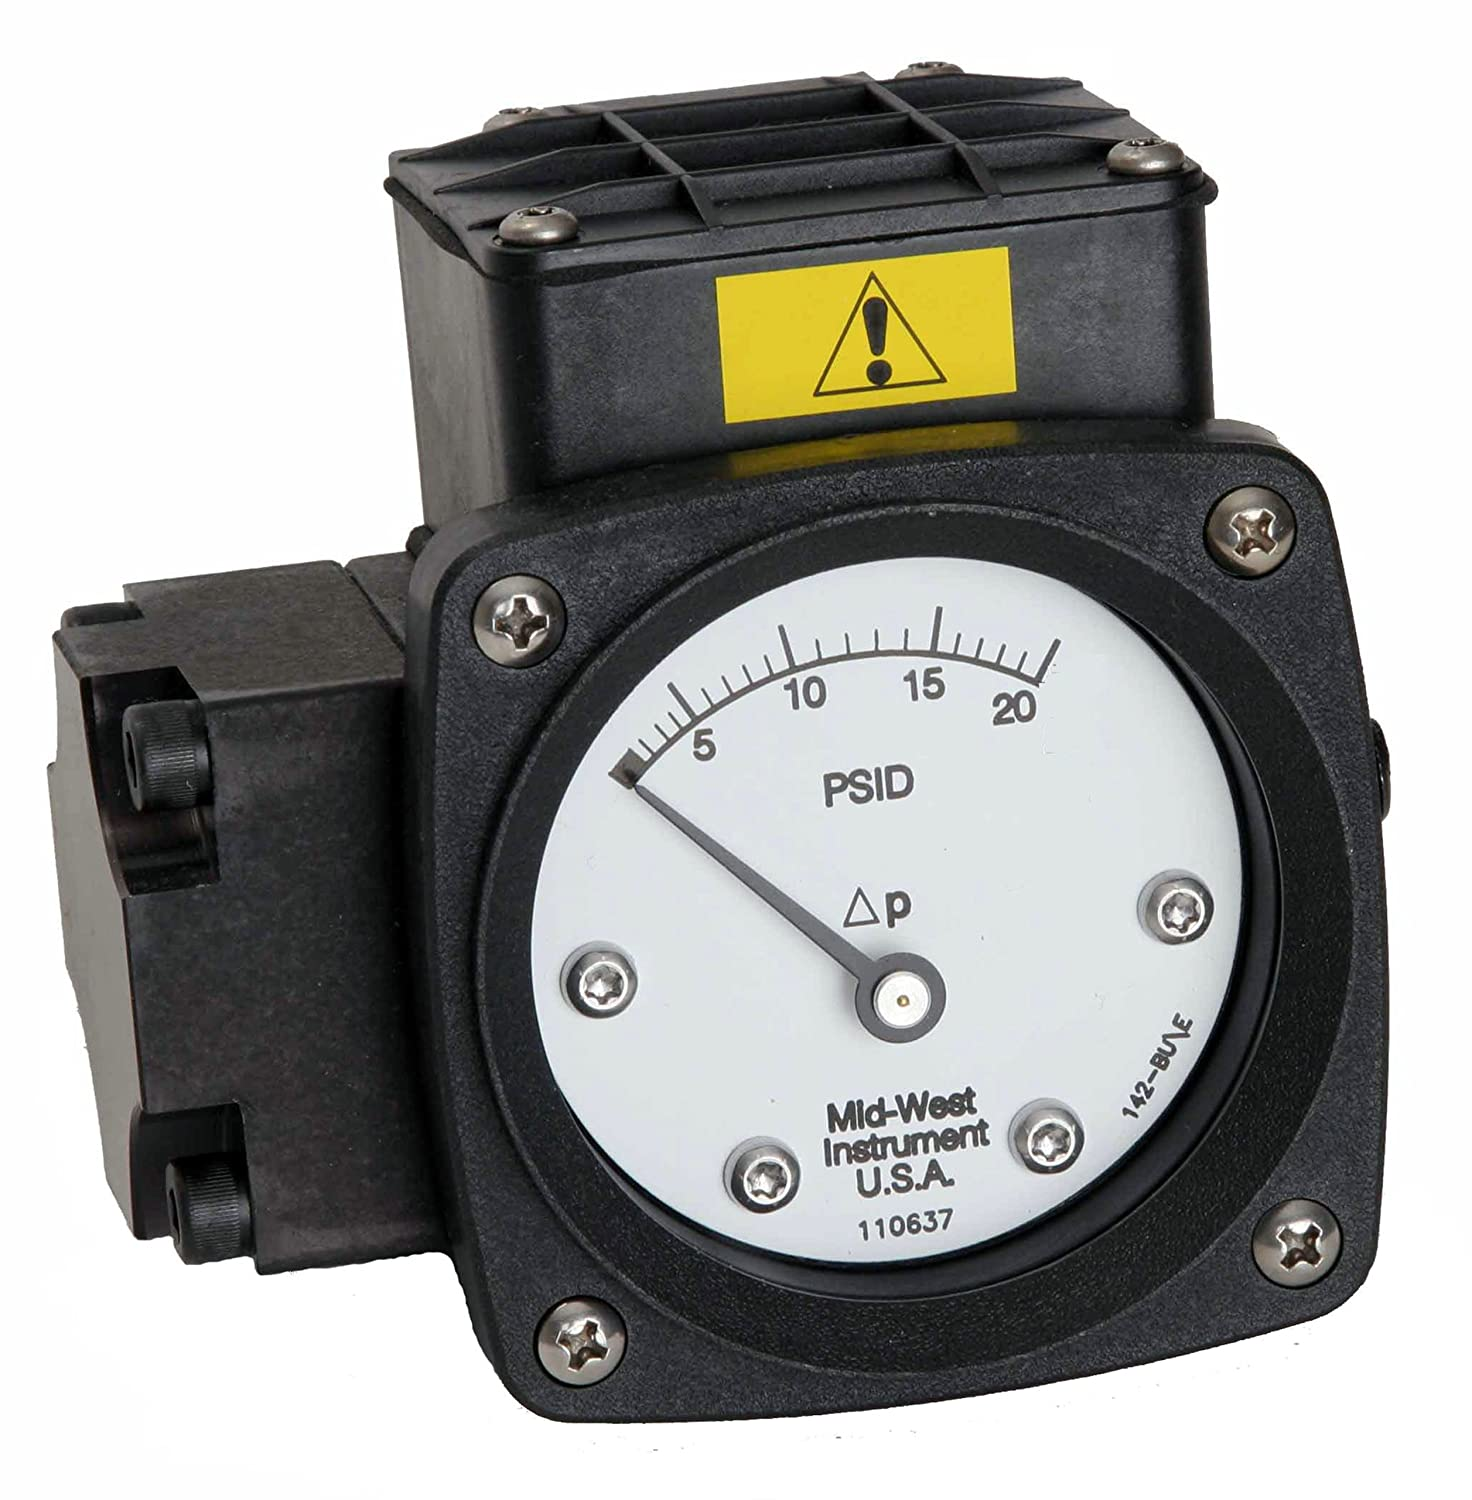 AA 2-1//2 Dial Mid-West 142-AA-00-O 1//4 FNPT Back Connection 0-20 IN H2O Range 1 Reed Switch in NEMA 4X//IP66 Enclosure Diaphragm Type 3//2//3/% Full Scale Accuracy -20H Differential Pressure Gauge with Aluminum Body and 316 Stainless Steel Internals 3